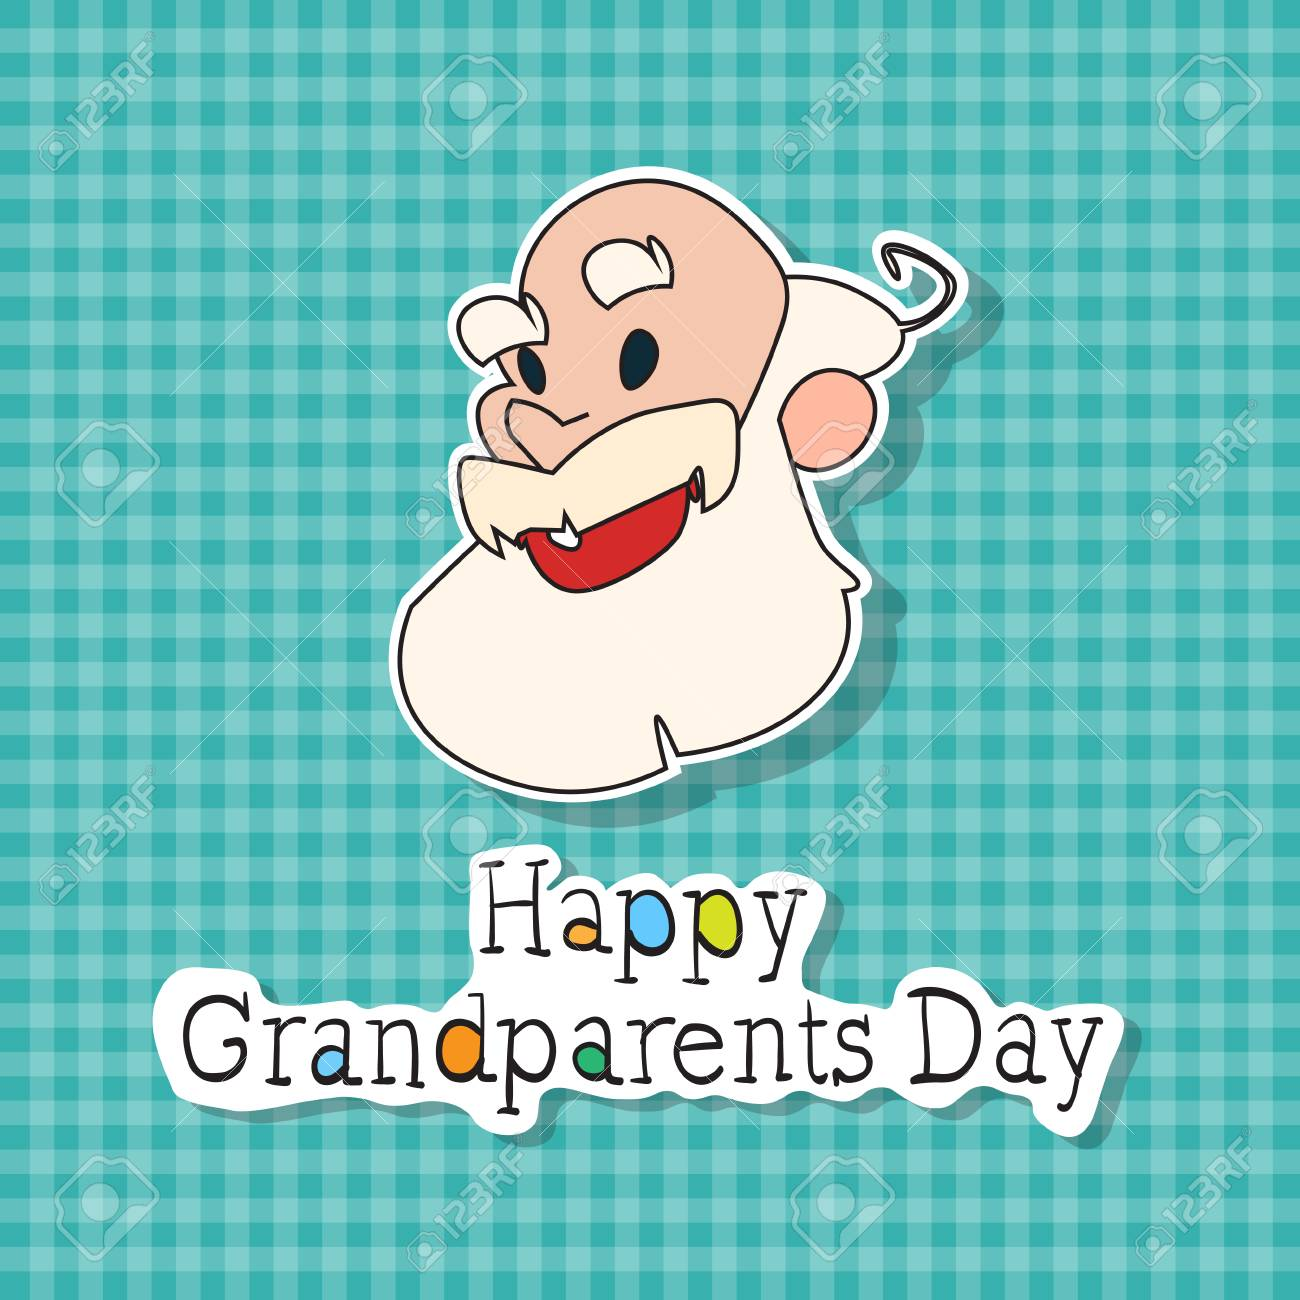 Happy grandparents day greeting card colorful banner pop art happy grandparents day greeting card colorful banner pop art style vector illustration stock vector 84059431 m4hsunfo